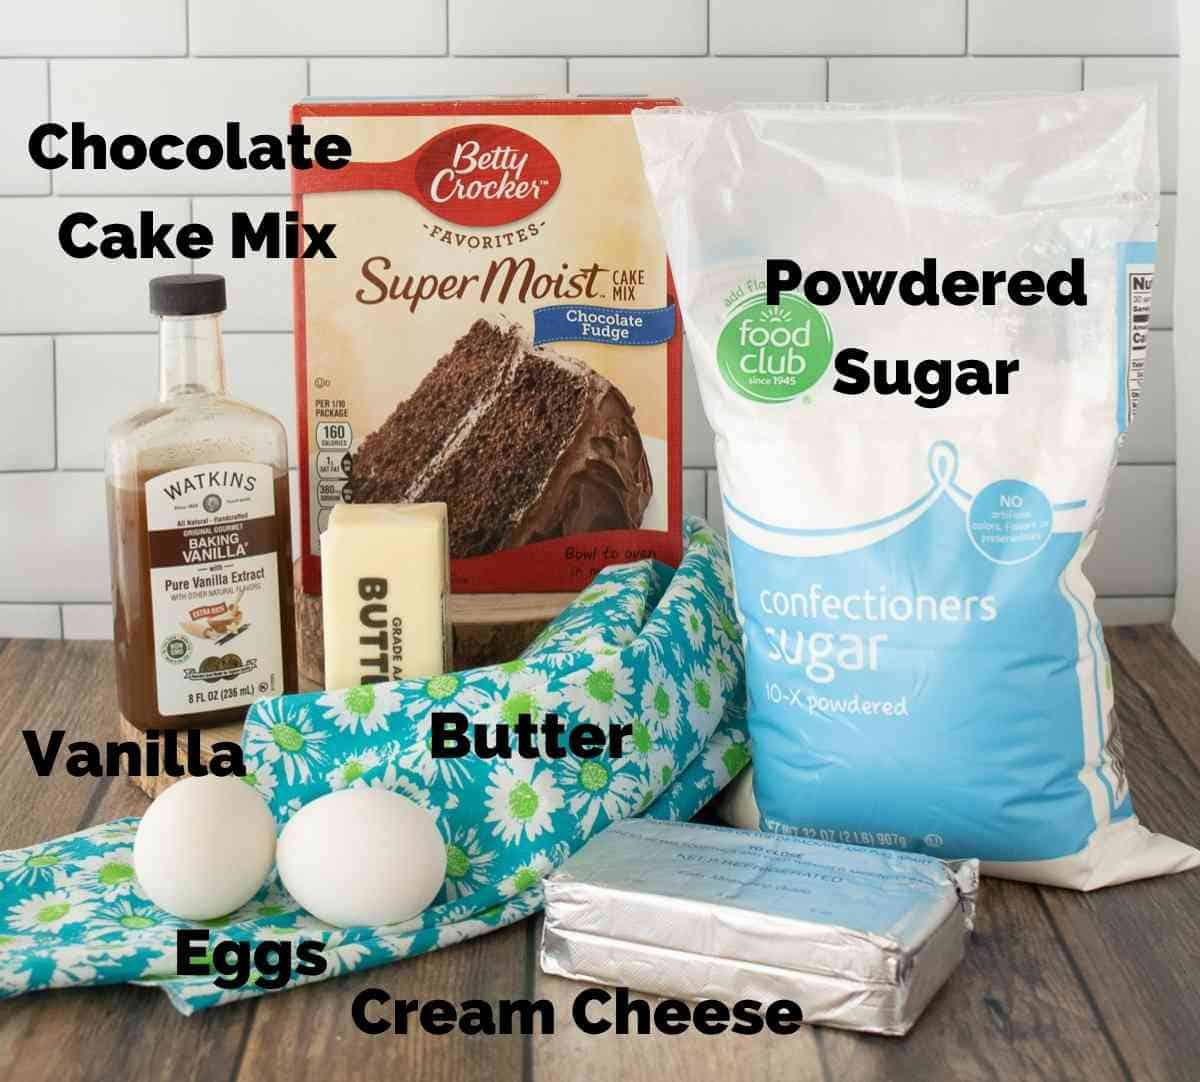 Ingredients for homemade oreo cookies.